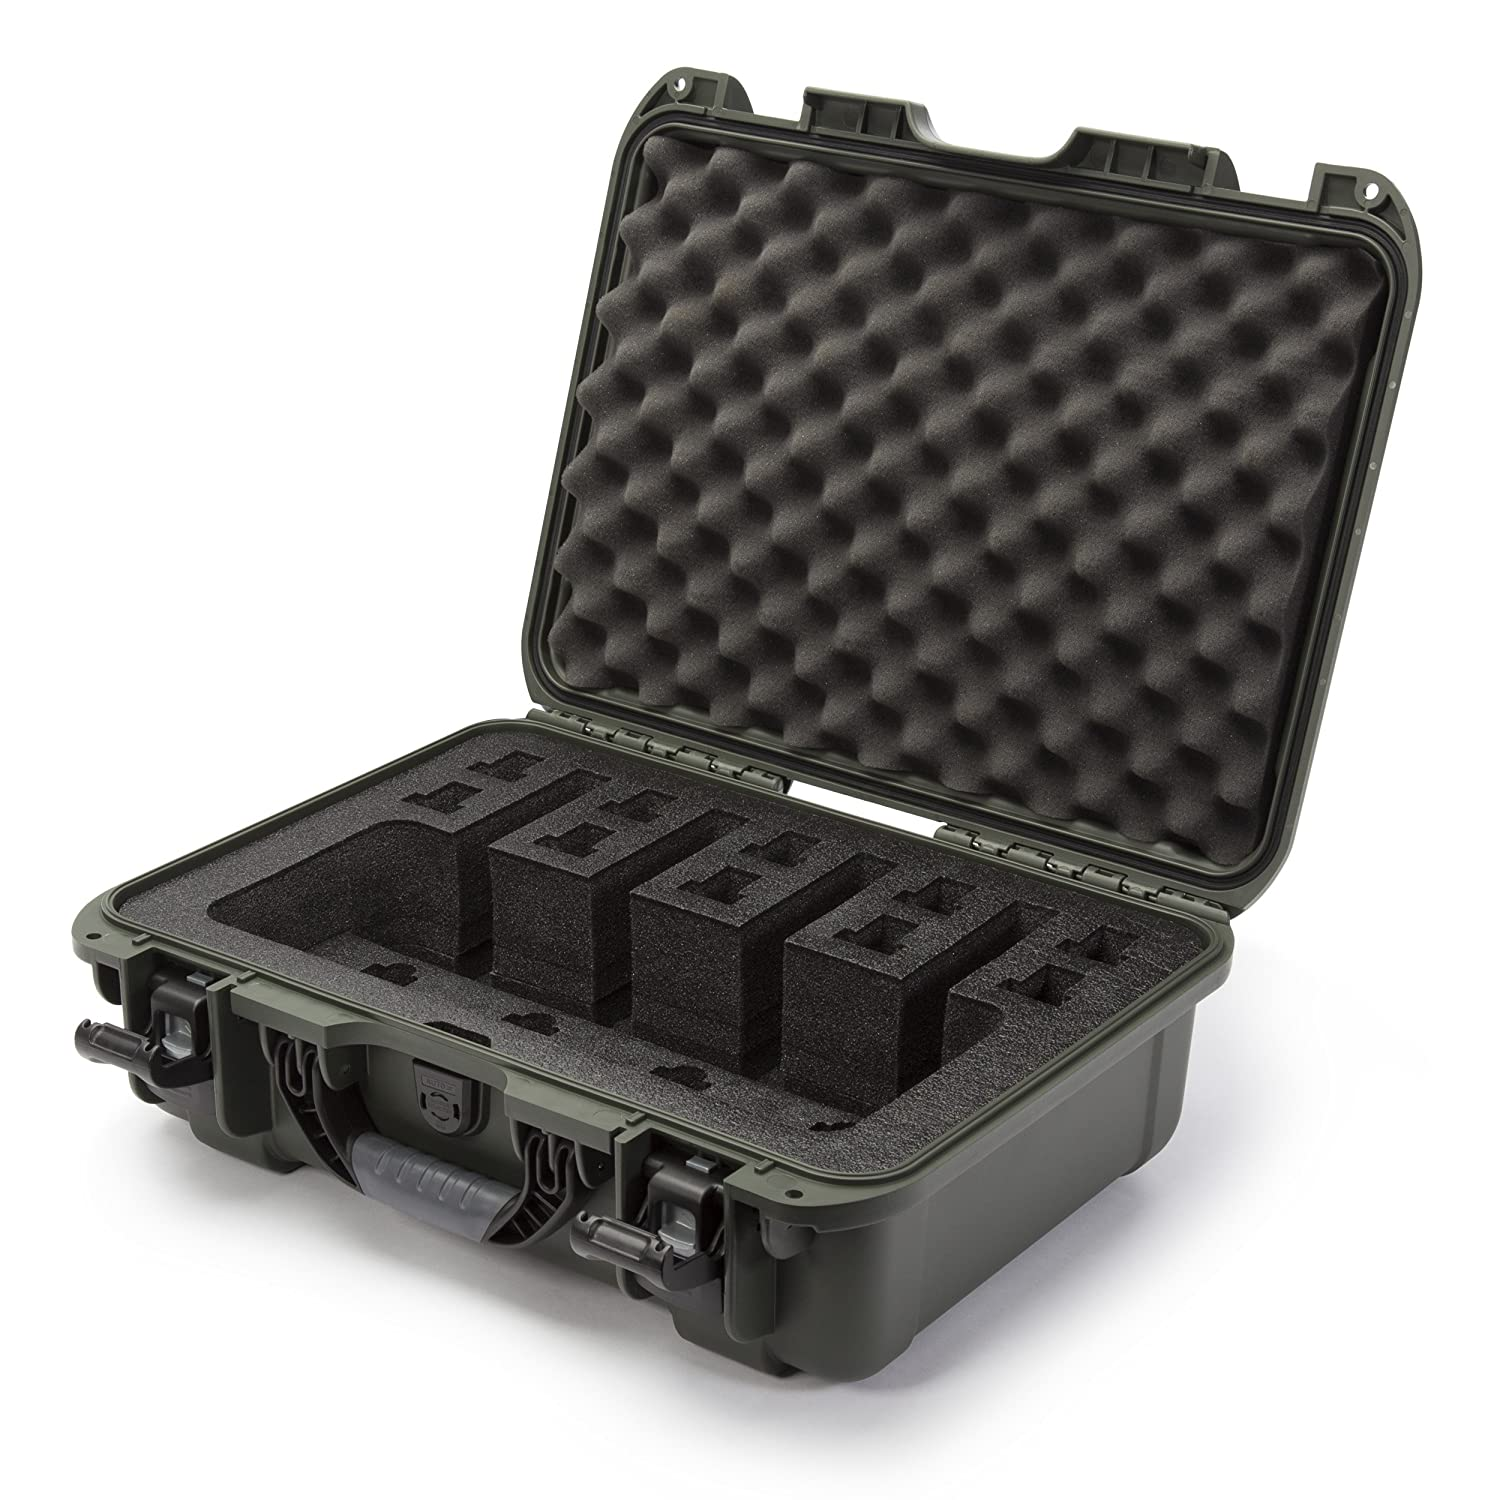 Nanuk 925 Waterproof Professional Gun Case, Military Approved with Custom Foam Insert for 4UP - Black 925-4UP1